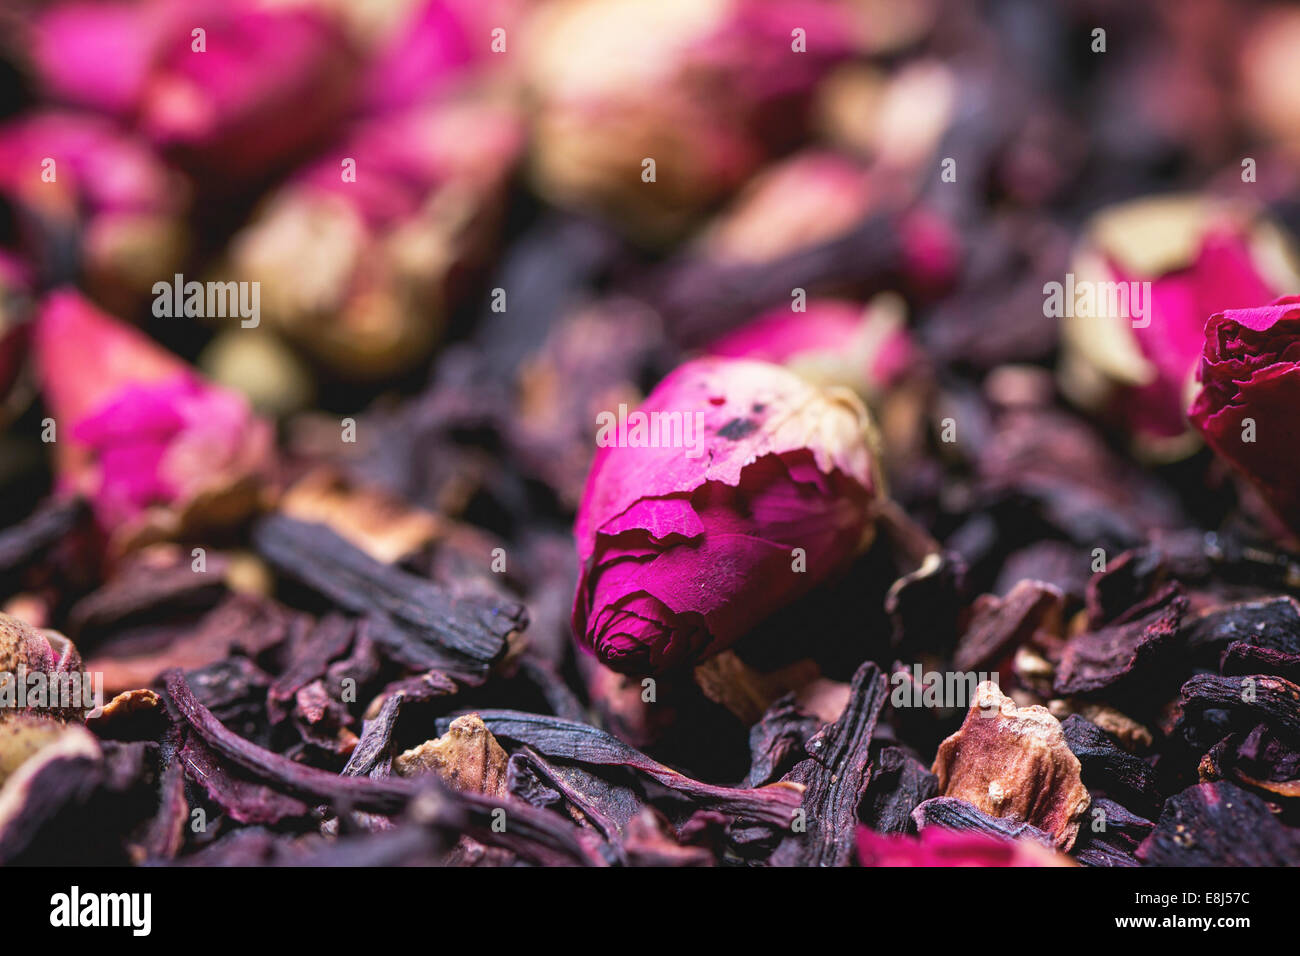 Pink hibiscus flower stock photos pink hibiscus flower stock heap of tea roses and dried hibiscus flower stock image izmirmasajfo Images